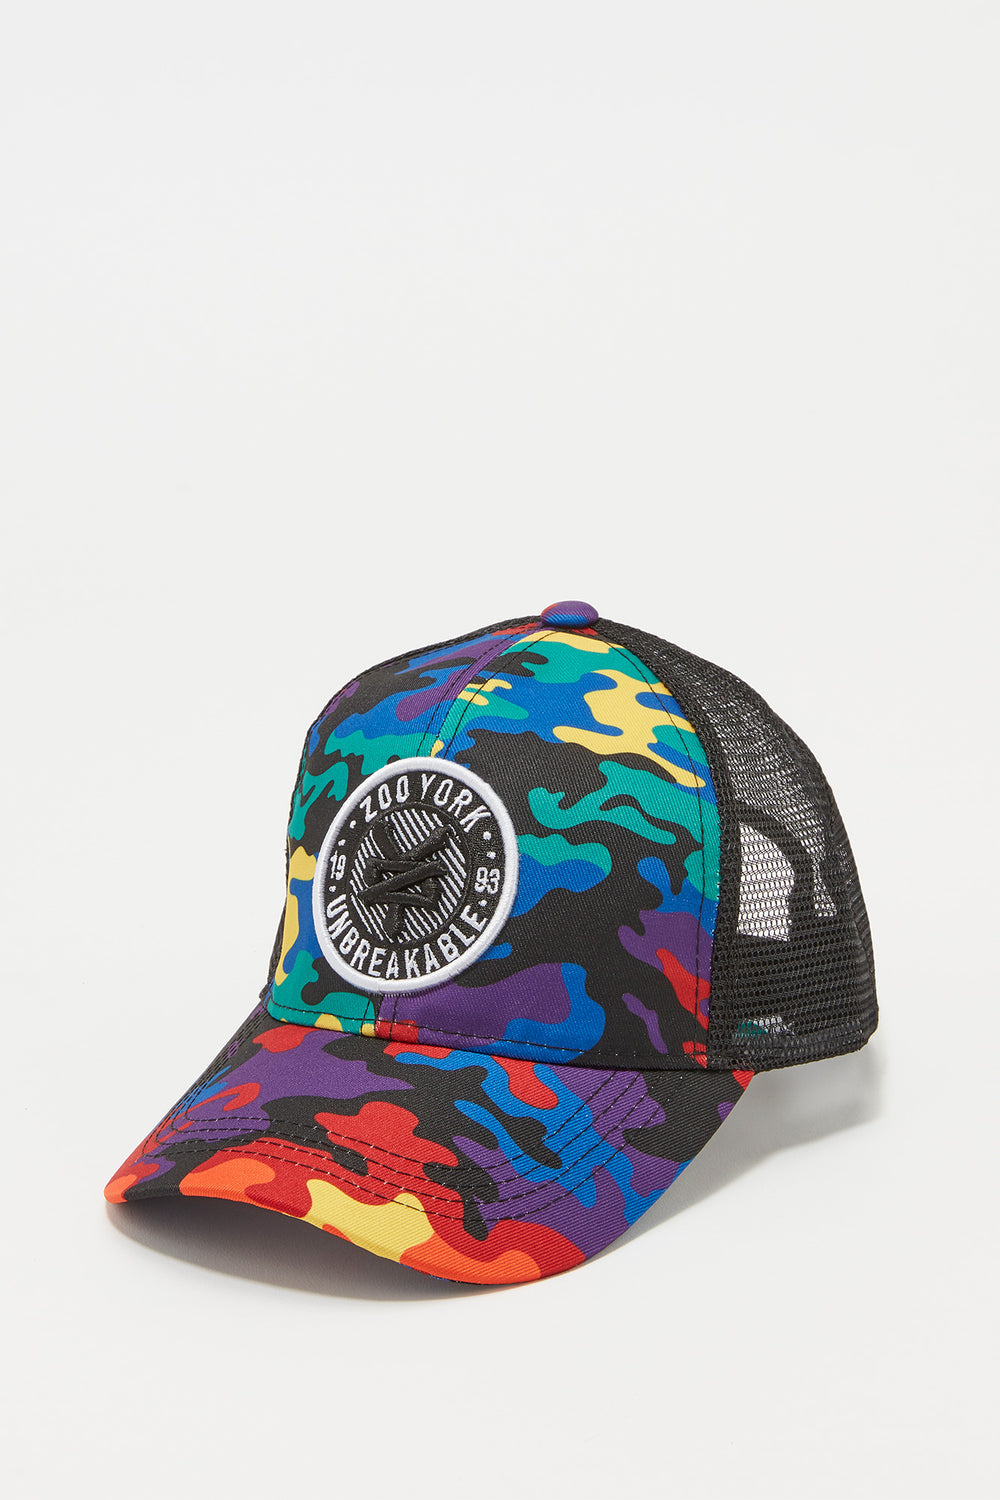 Zoo York Boys Rainbow Camo Trucker Hat Multi